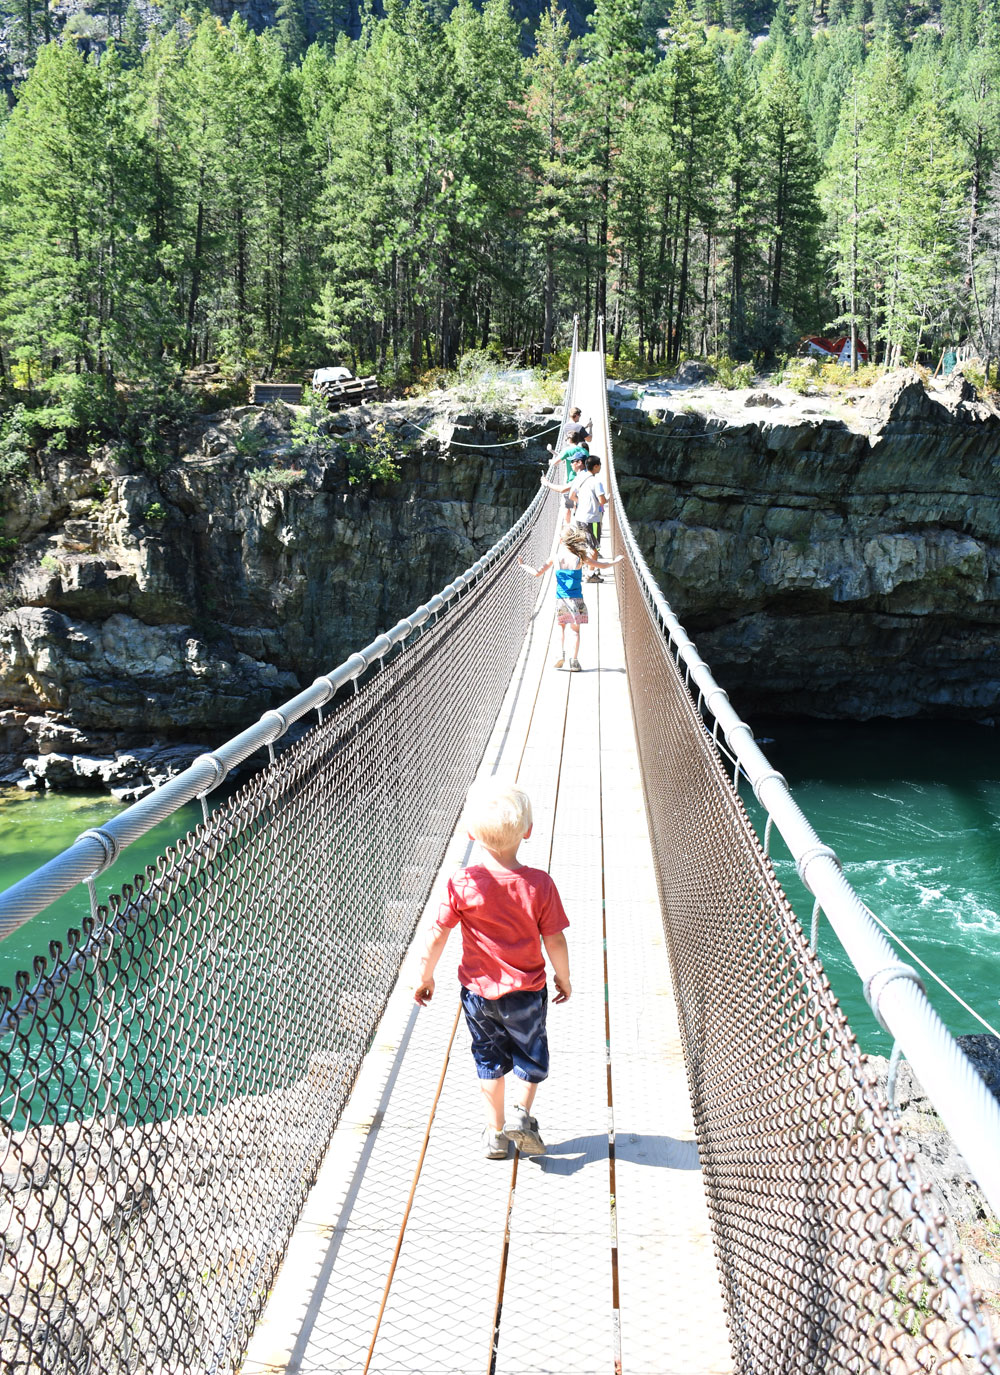 Day trip to Kootenai Falls and Swinging Bridge Montana family adventure